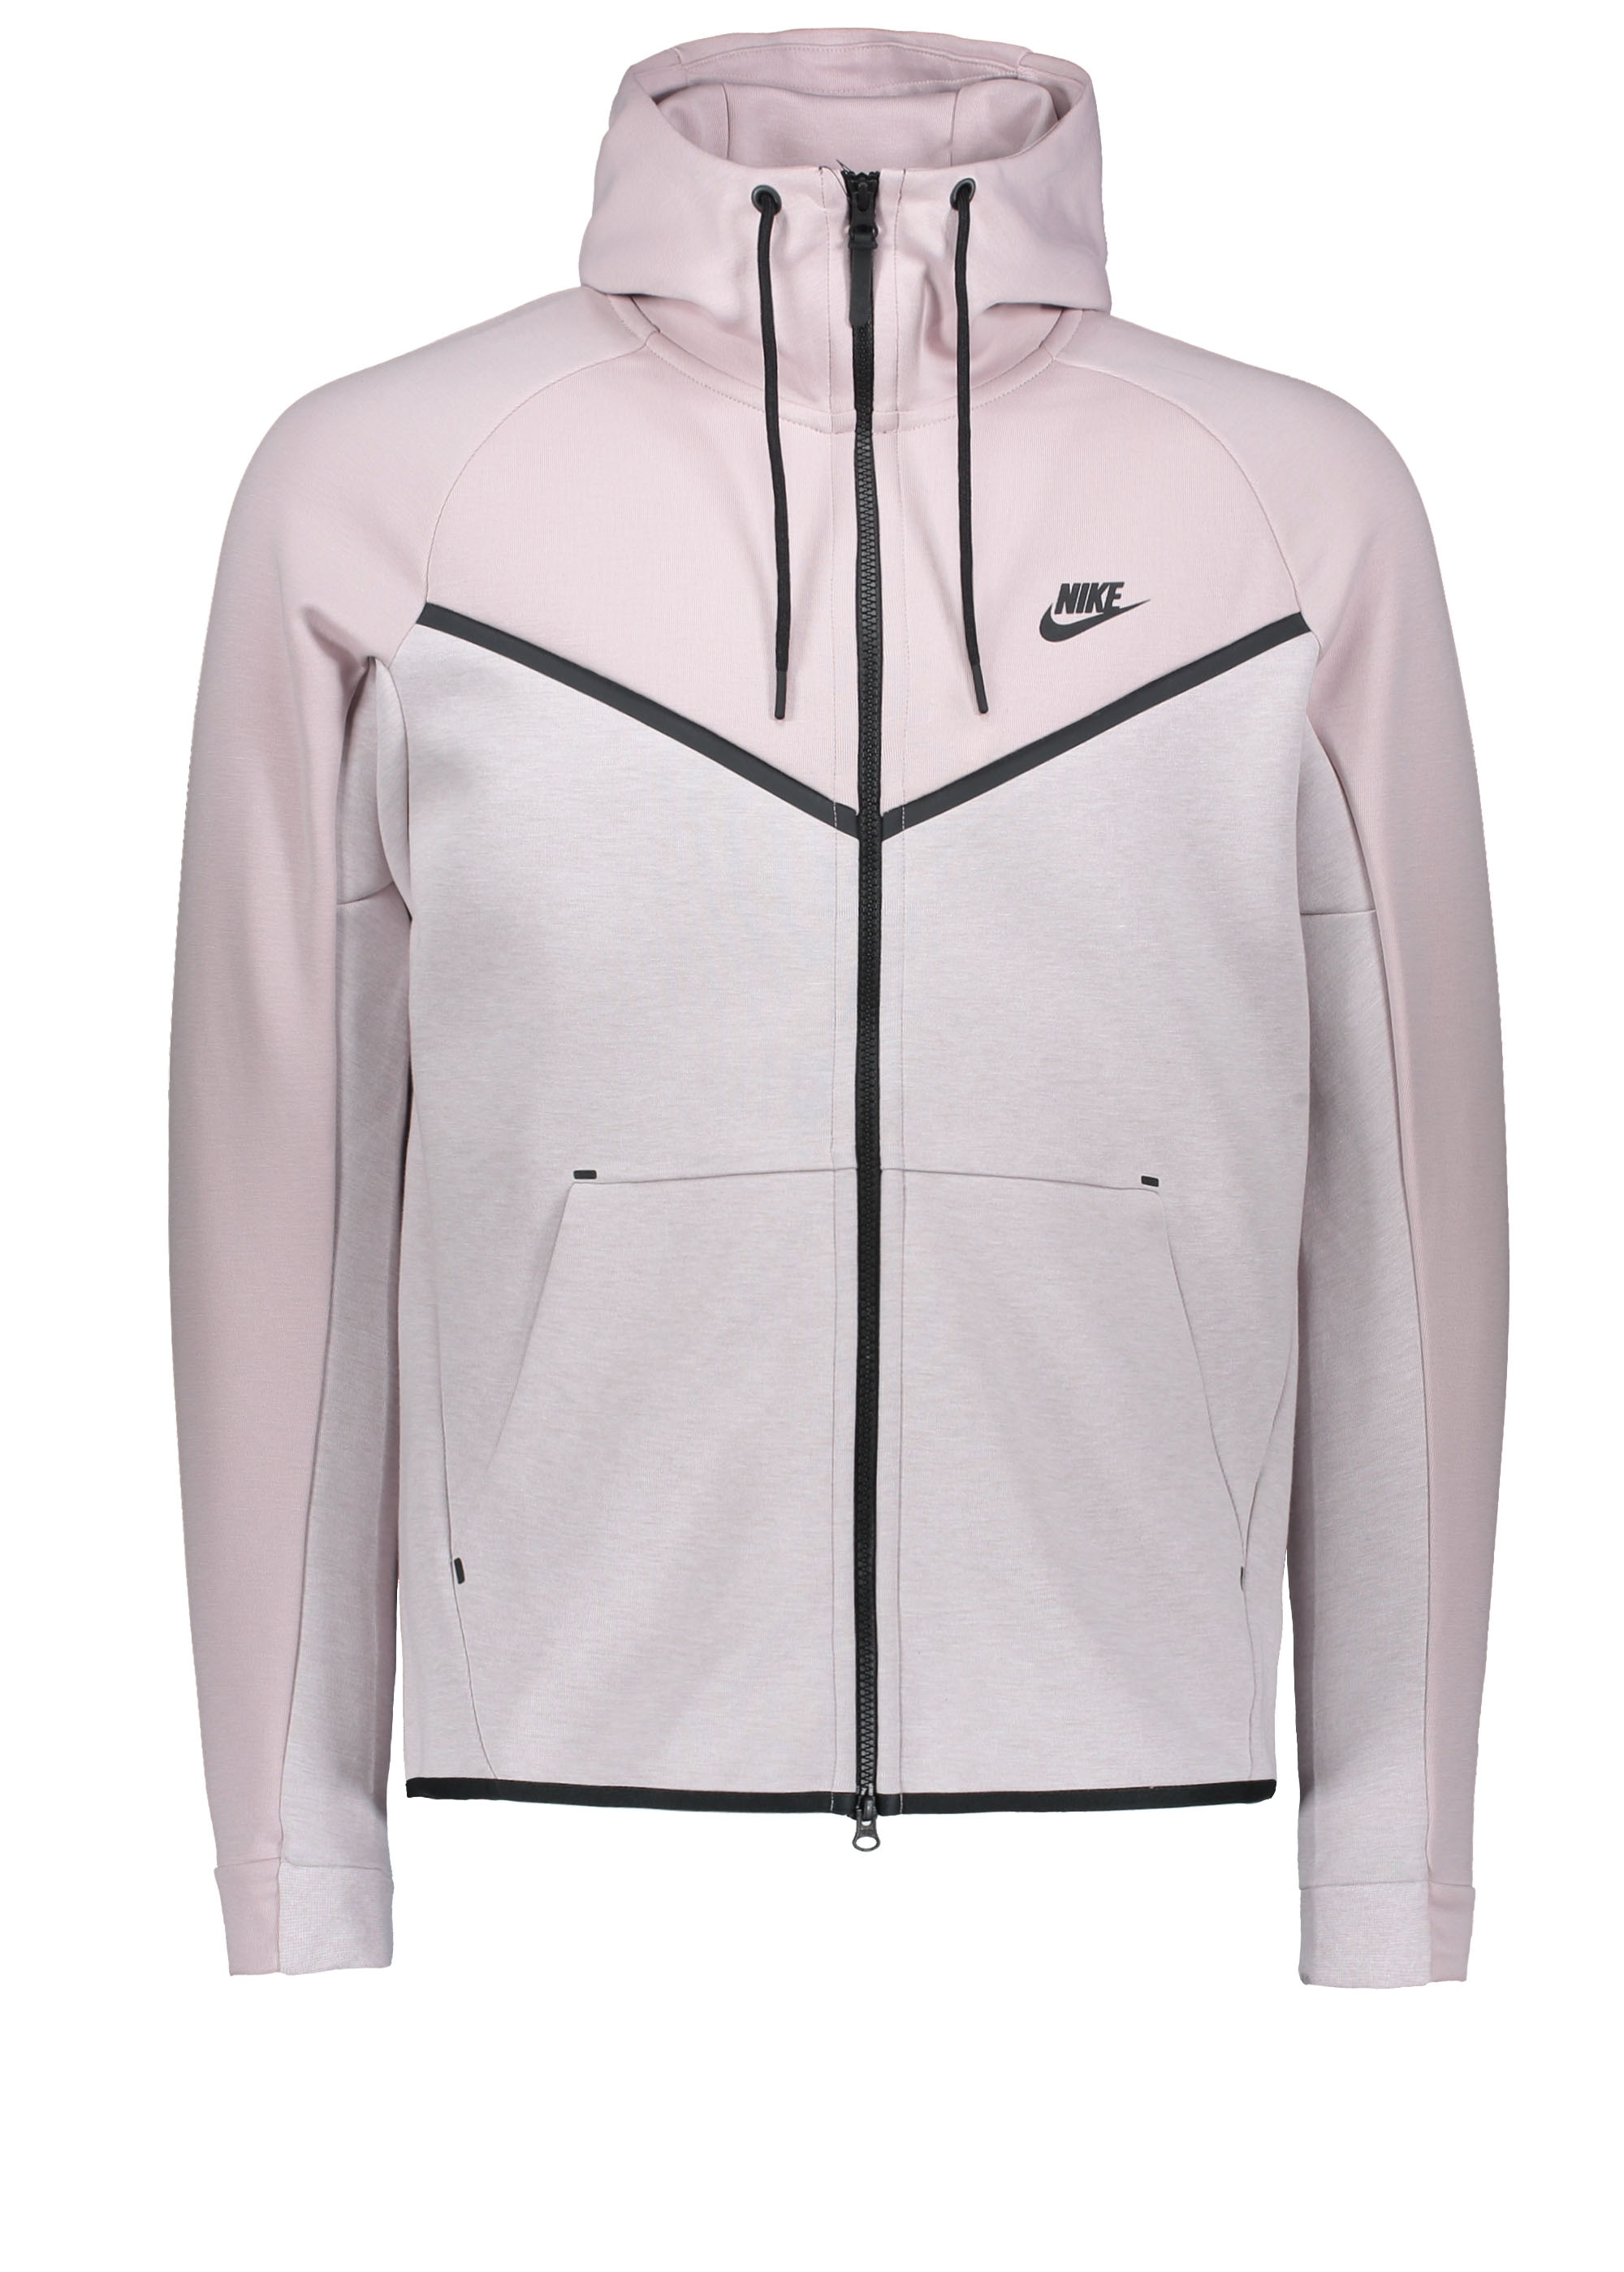 00ae56a5cc8a Nike Apparel Windrunner Hoodie - Particle Rose - Triads Mens from ...